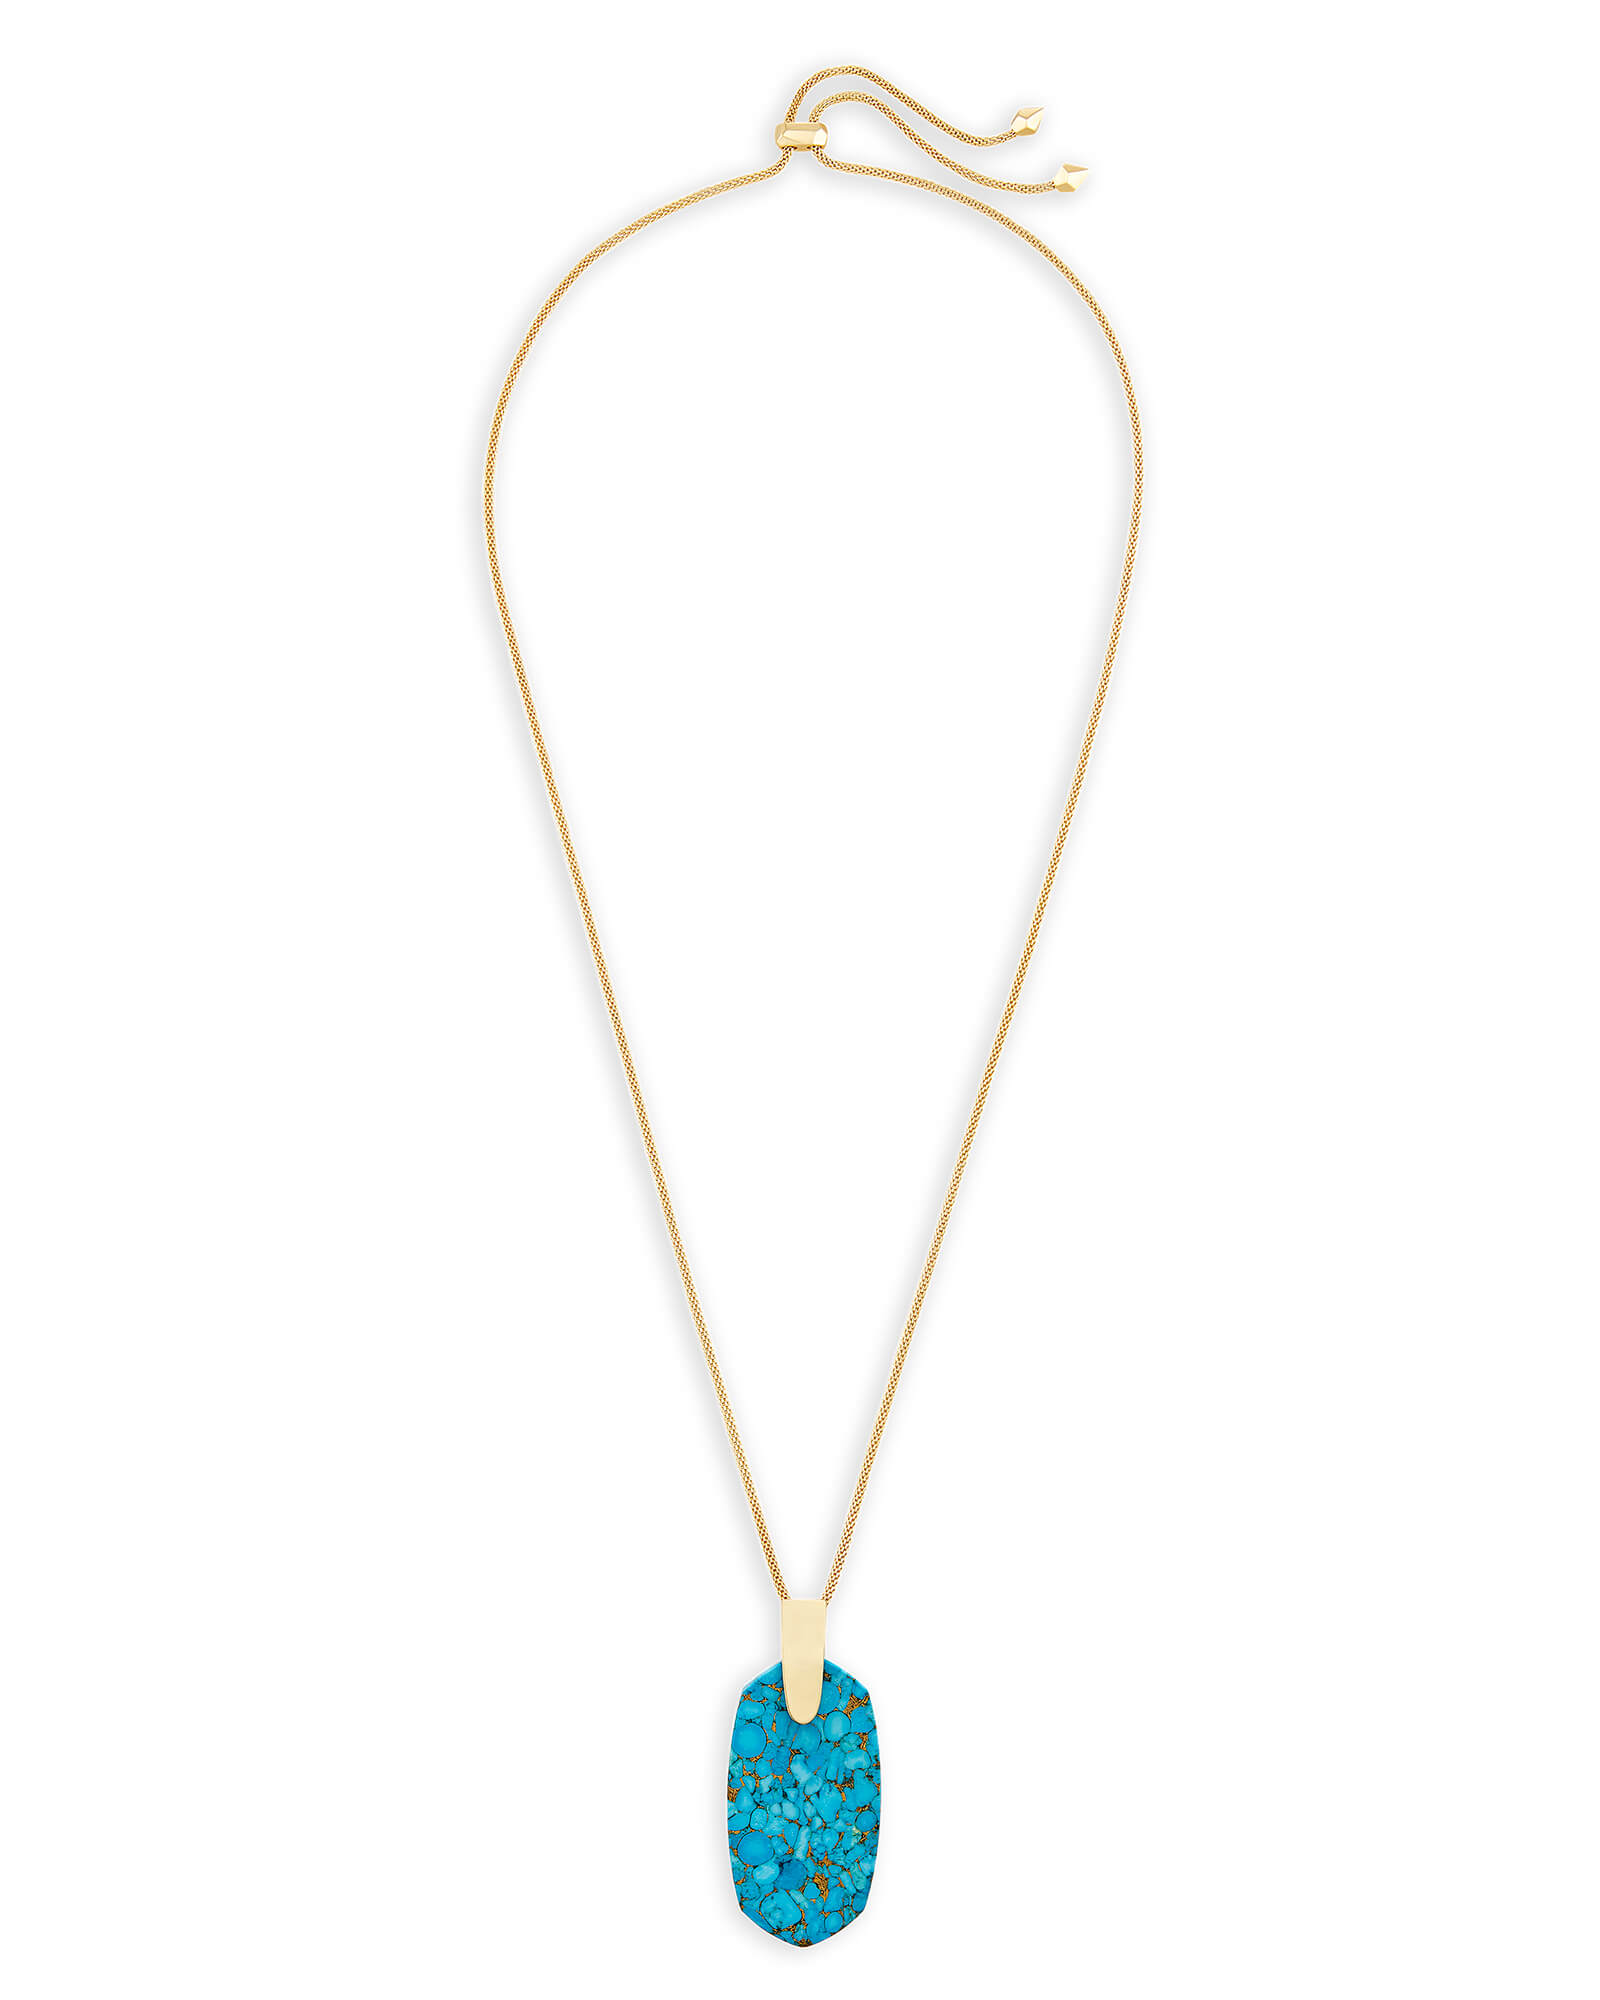 Inez Long Pendant Necklace in Bronze Veined Turquoise Magnesite